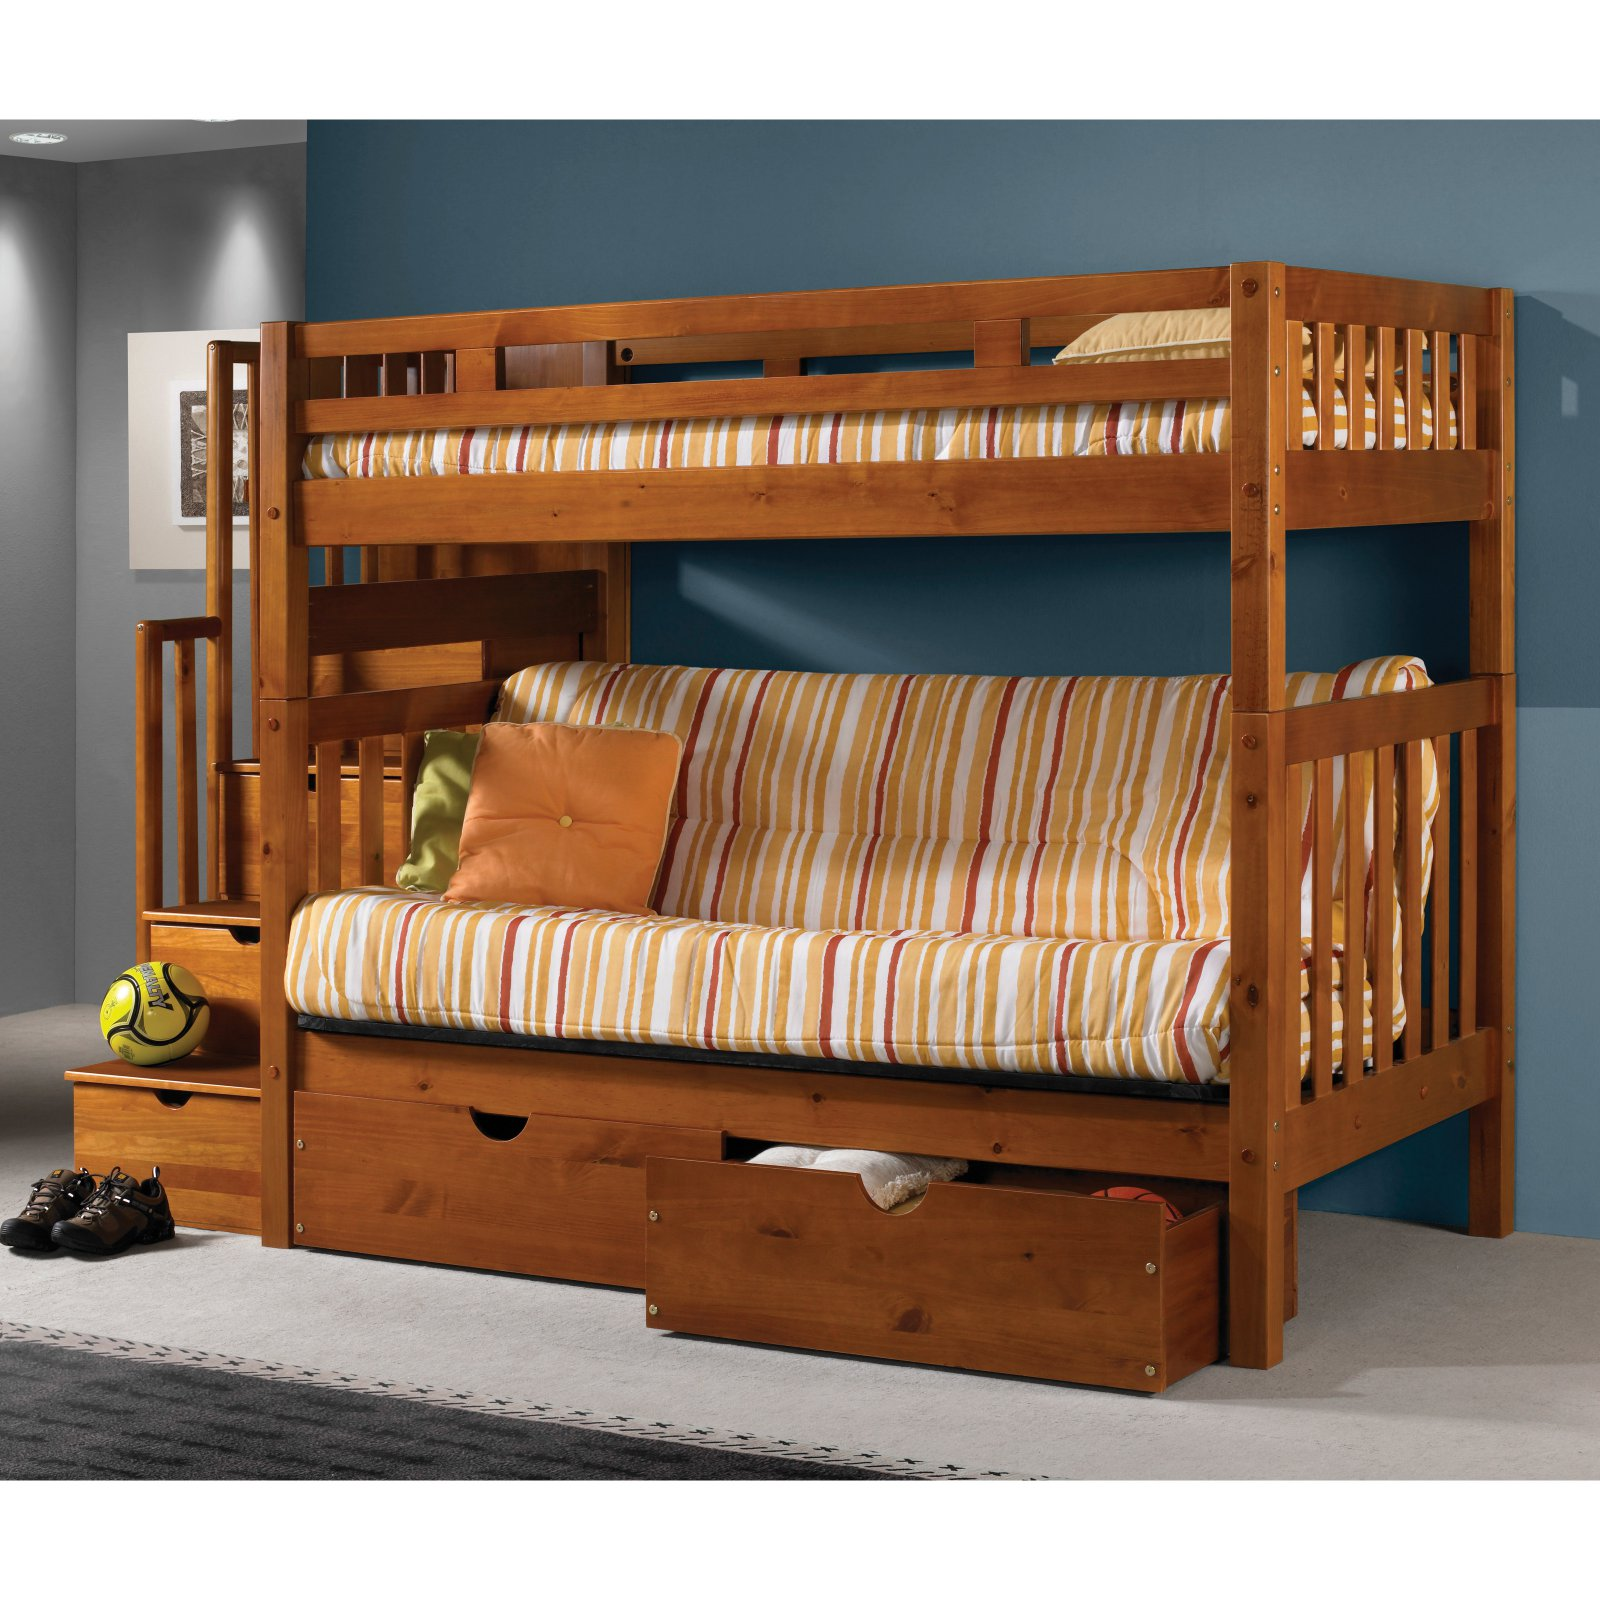 Donco Twin Futon Stairway Bunk Bed Honey Bunk beds